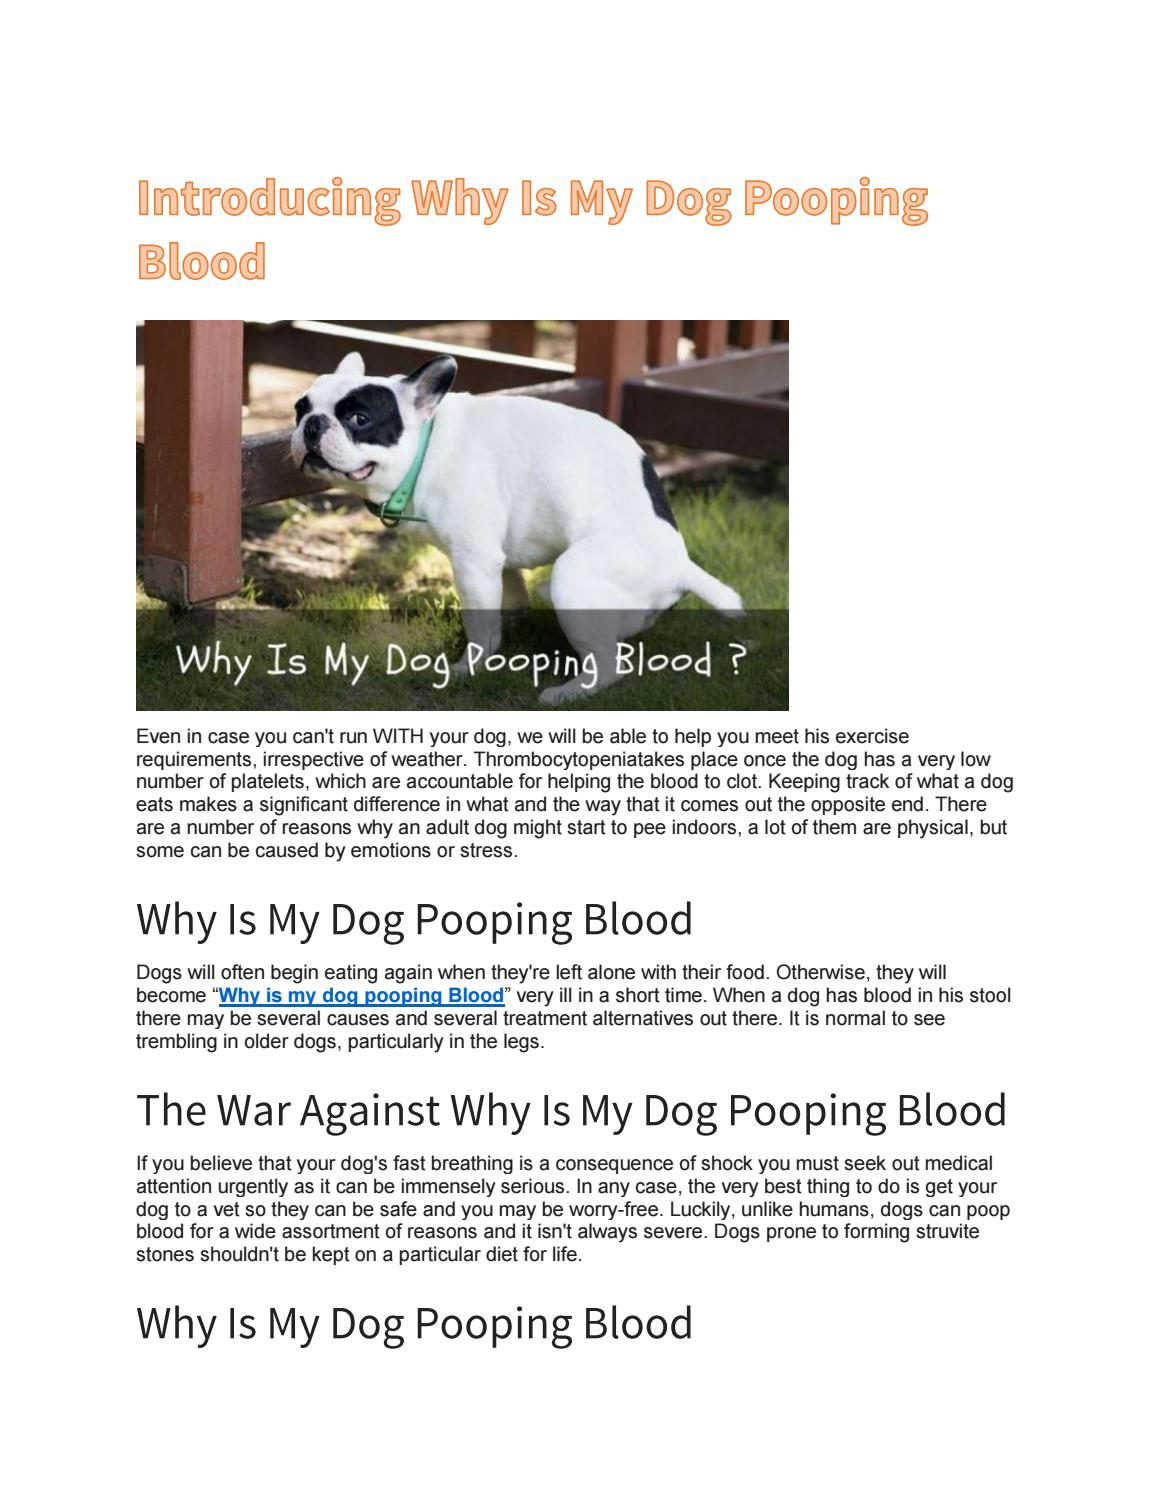 Introducing Why Is My Dog Pooping Blood By Johnslaberge